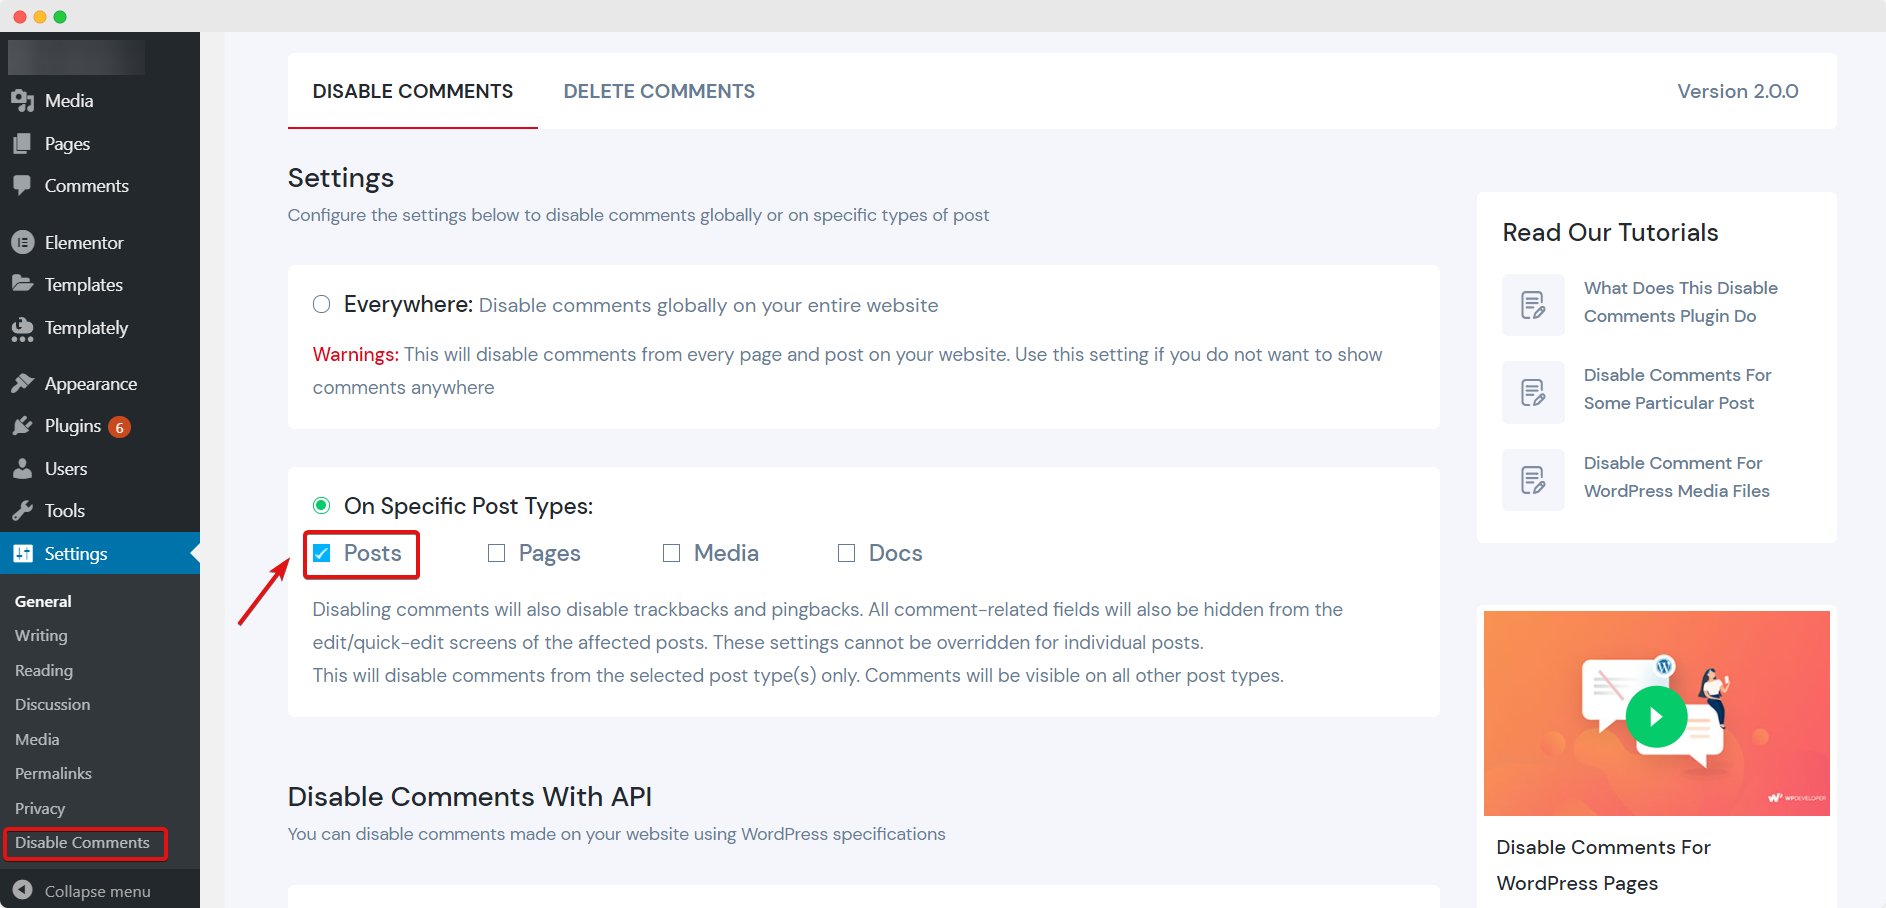 Disable Comments For WordPress Posts